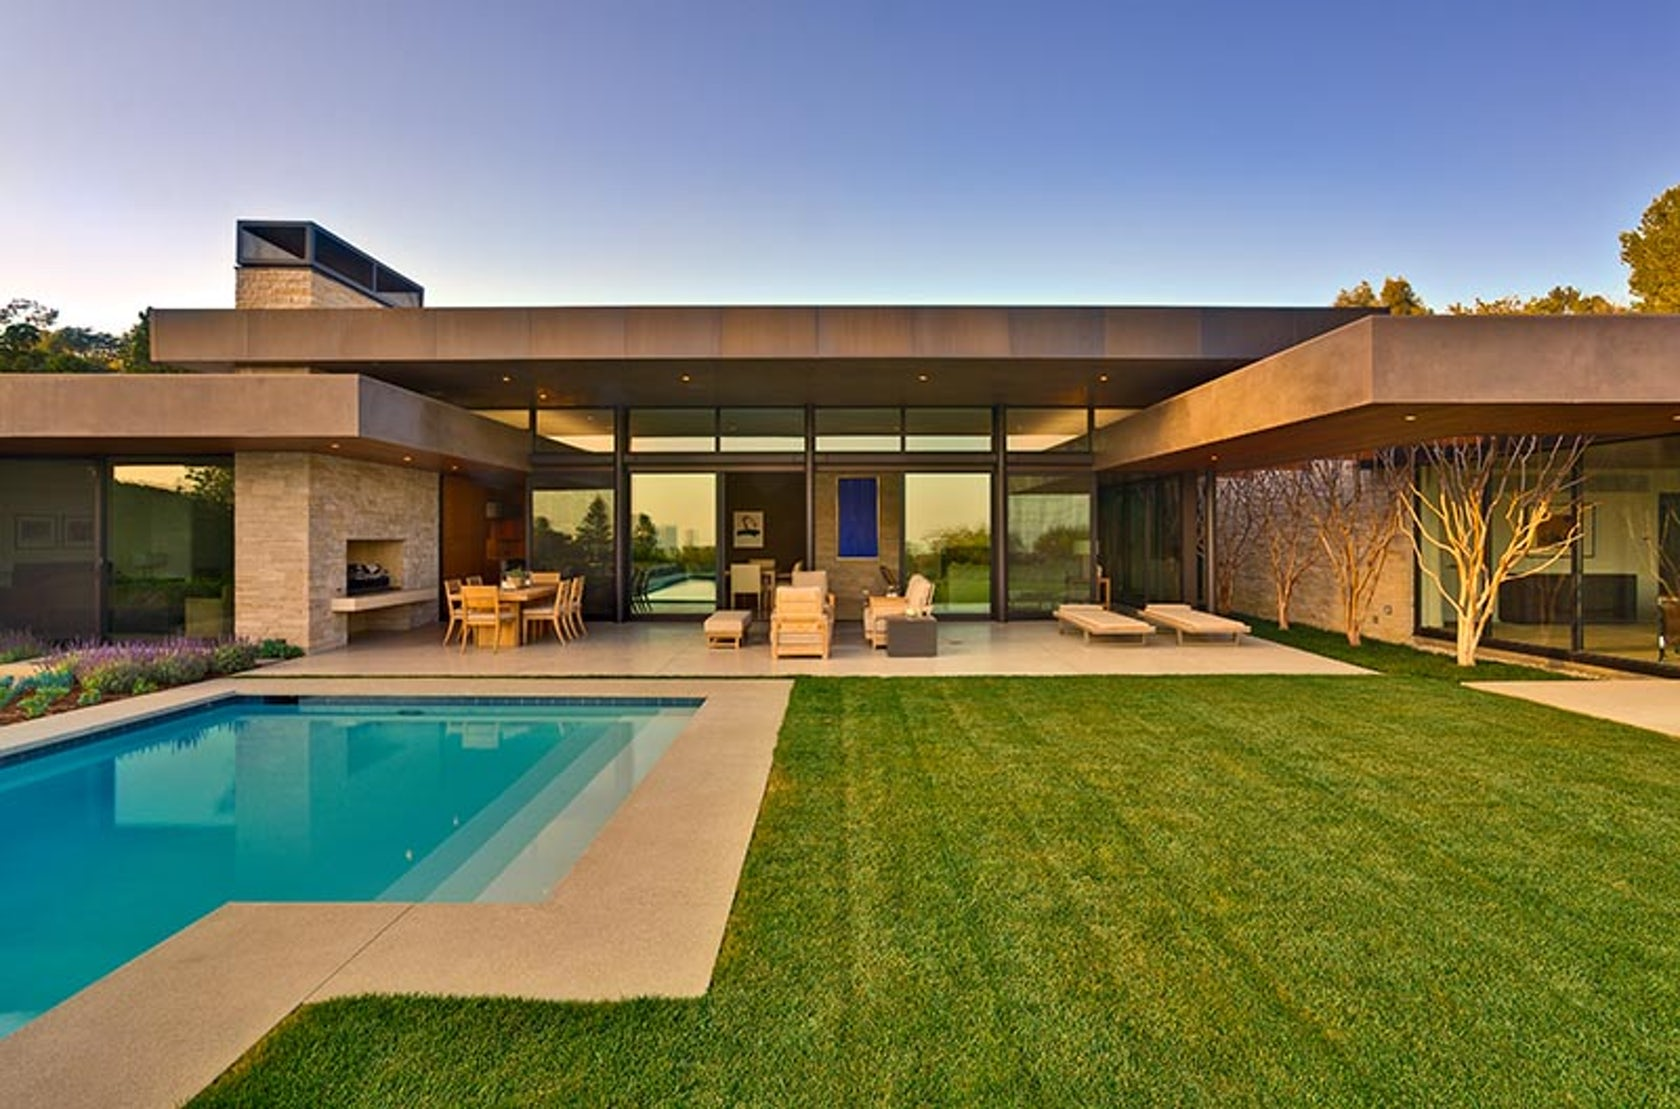 Trousdale Residence by Marmol Radziner - Architizer